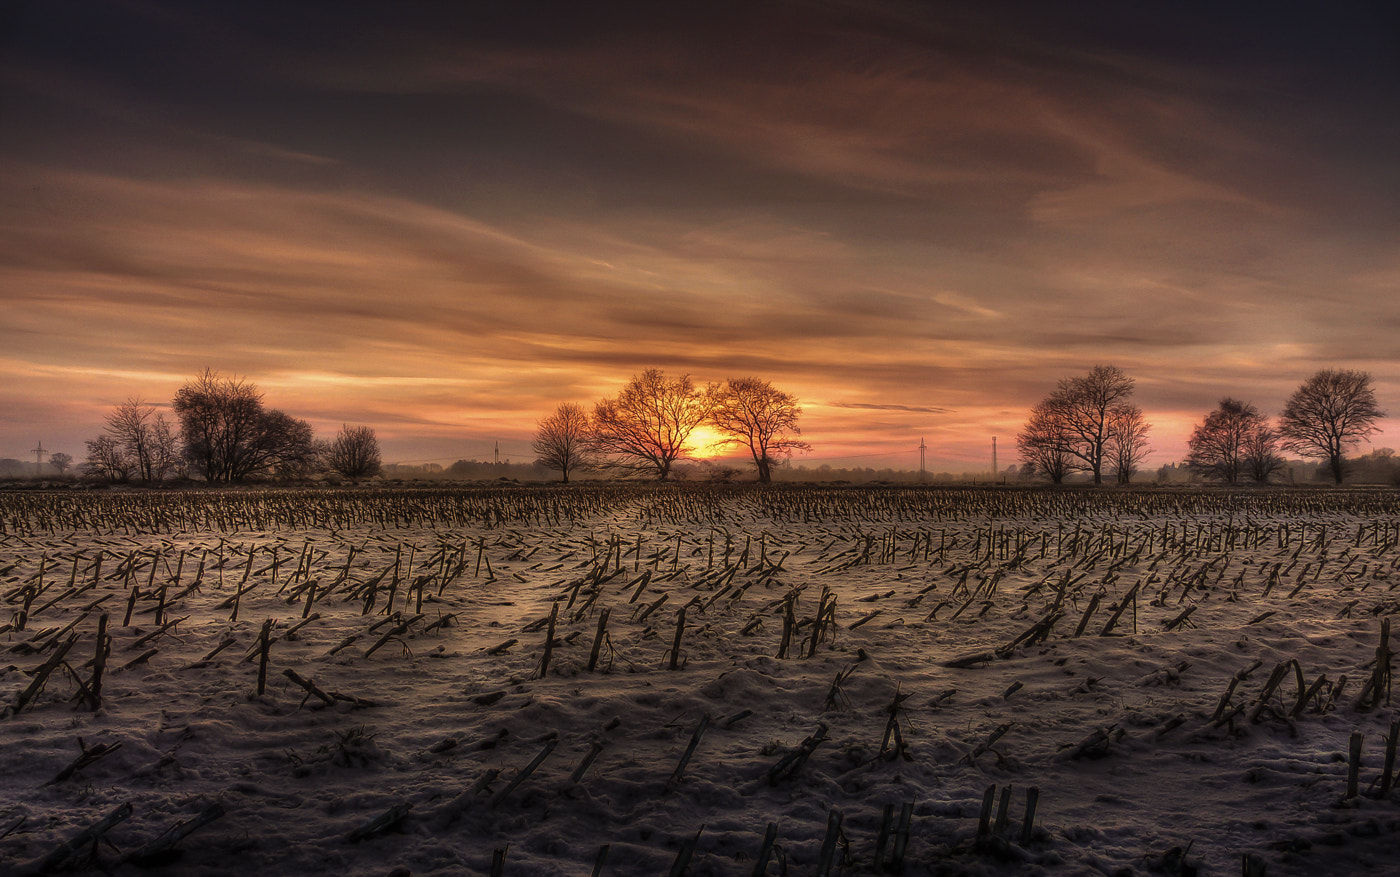 Photograph Corn field at sunset in winter by Jonny Island on 500px